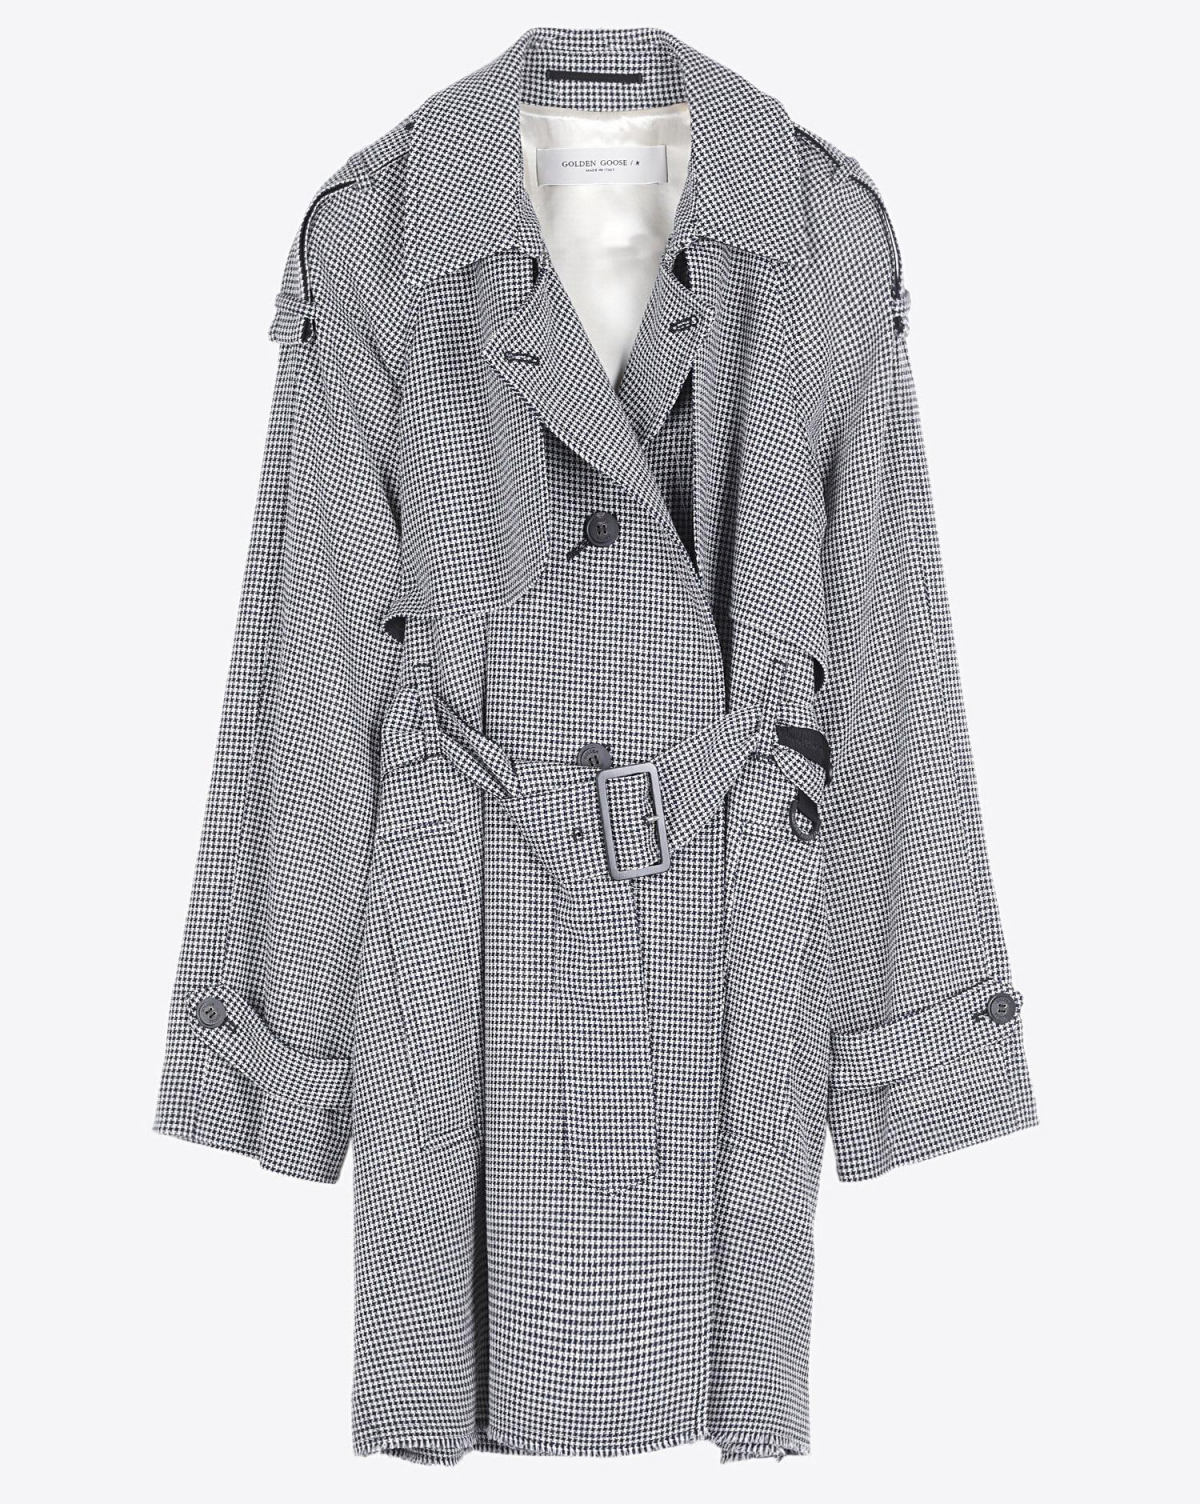 Golden Goose Vêtements Pré-Collection Trench Serenity - Seedpearl /Navy